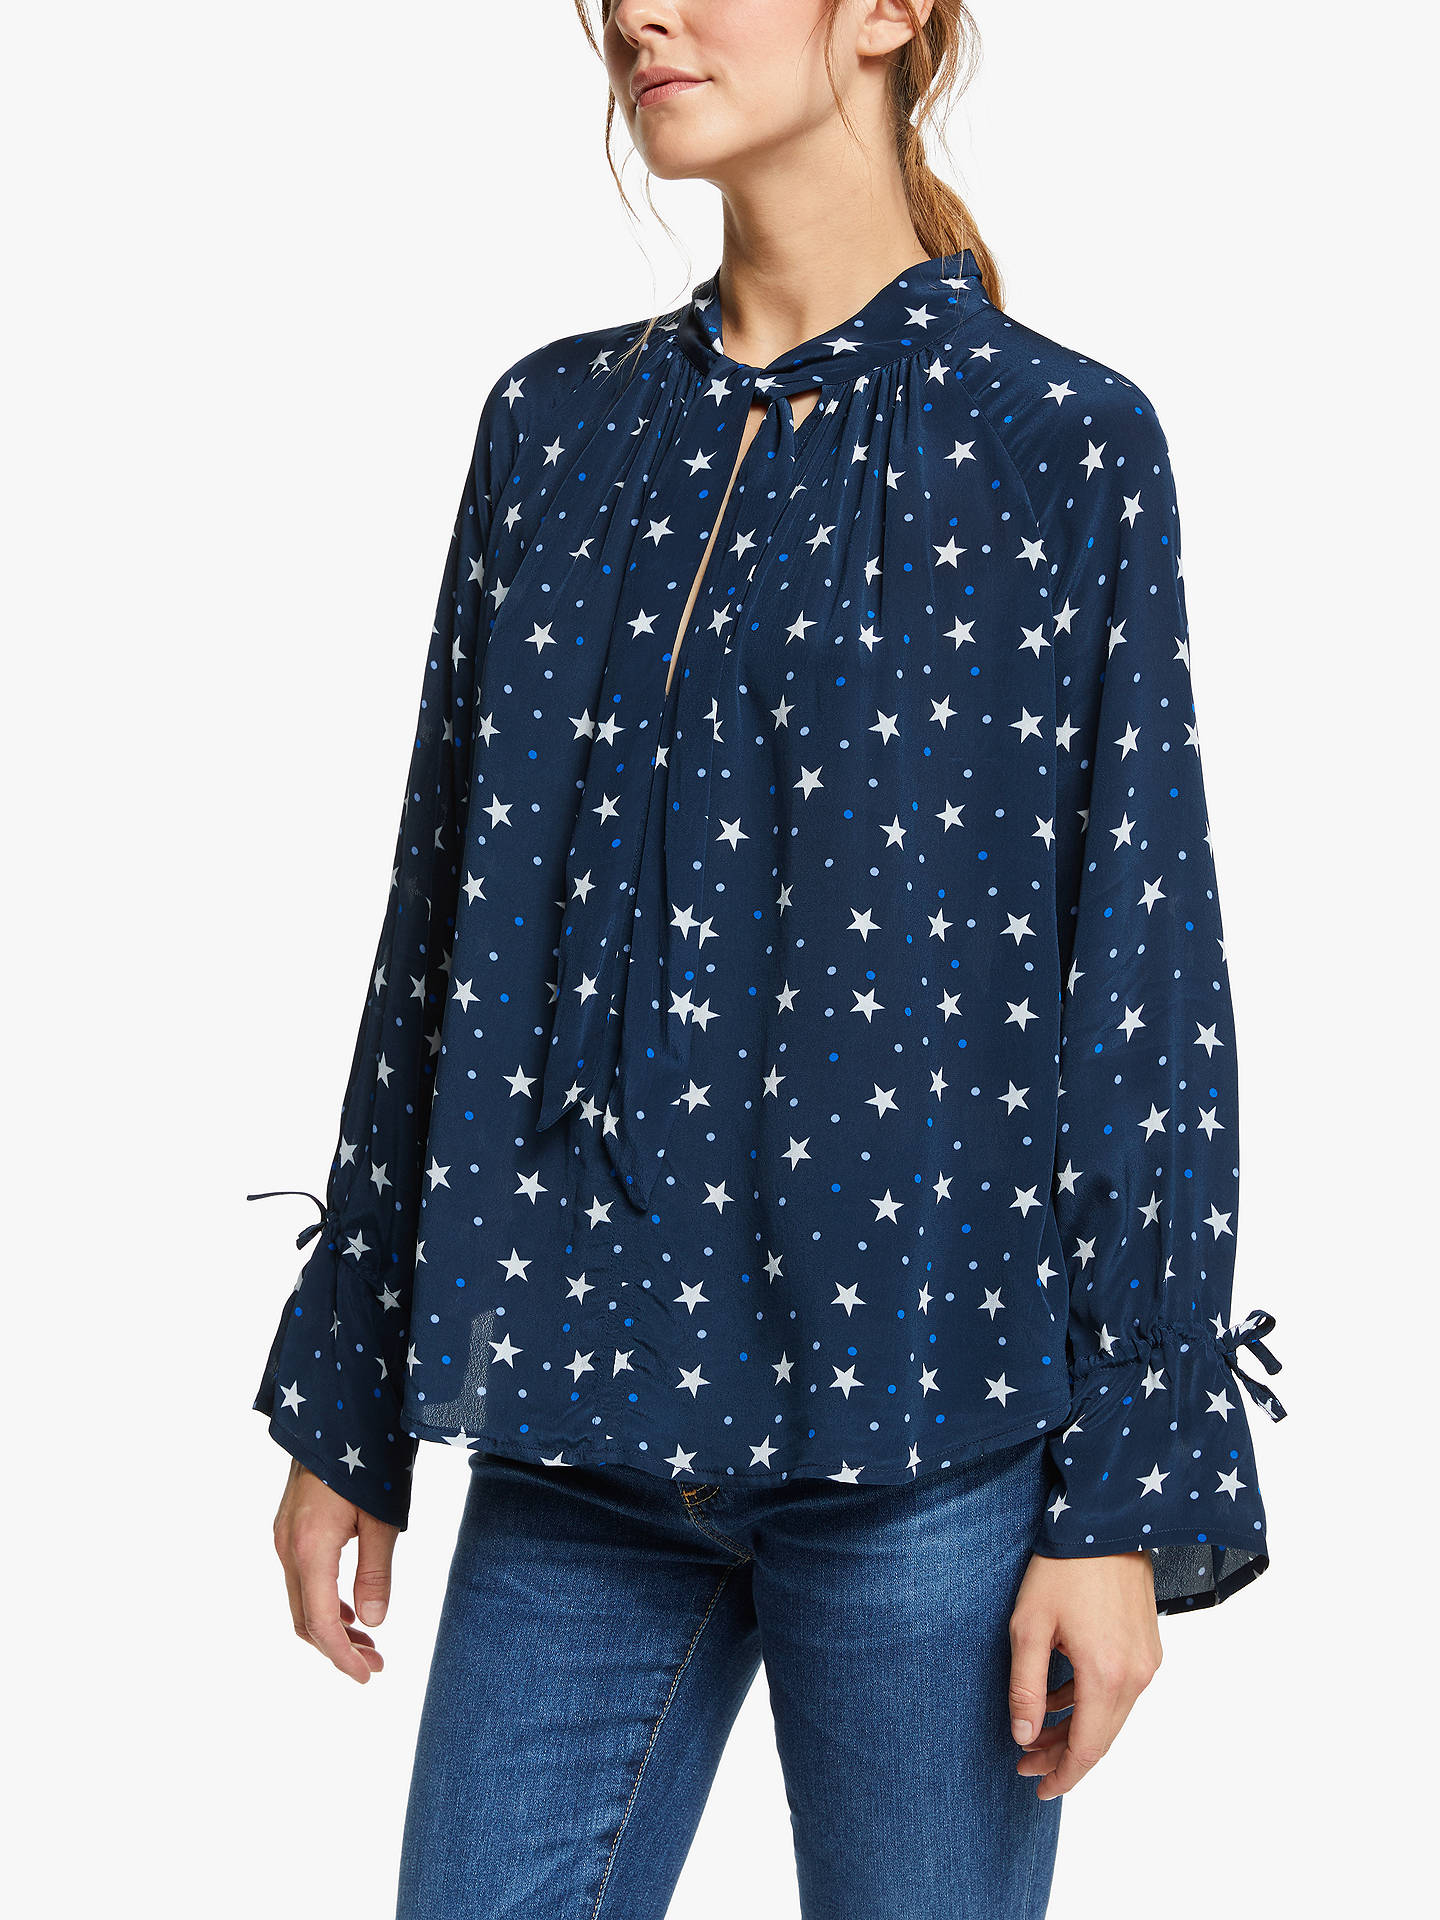 091f5df3ebef84 Buy Pyrus Anais Star Spot Print Blouse, Navy, M Online at johnlewis.com ...